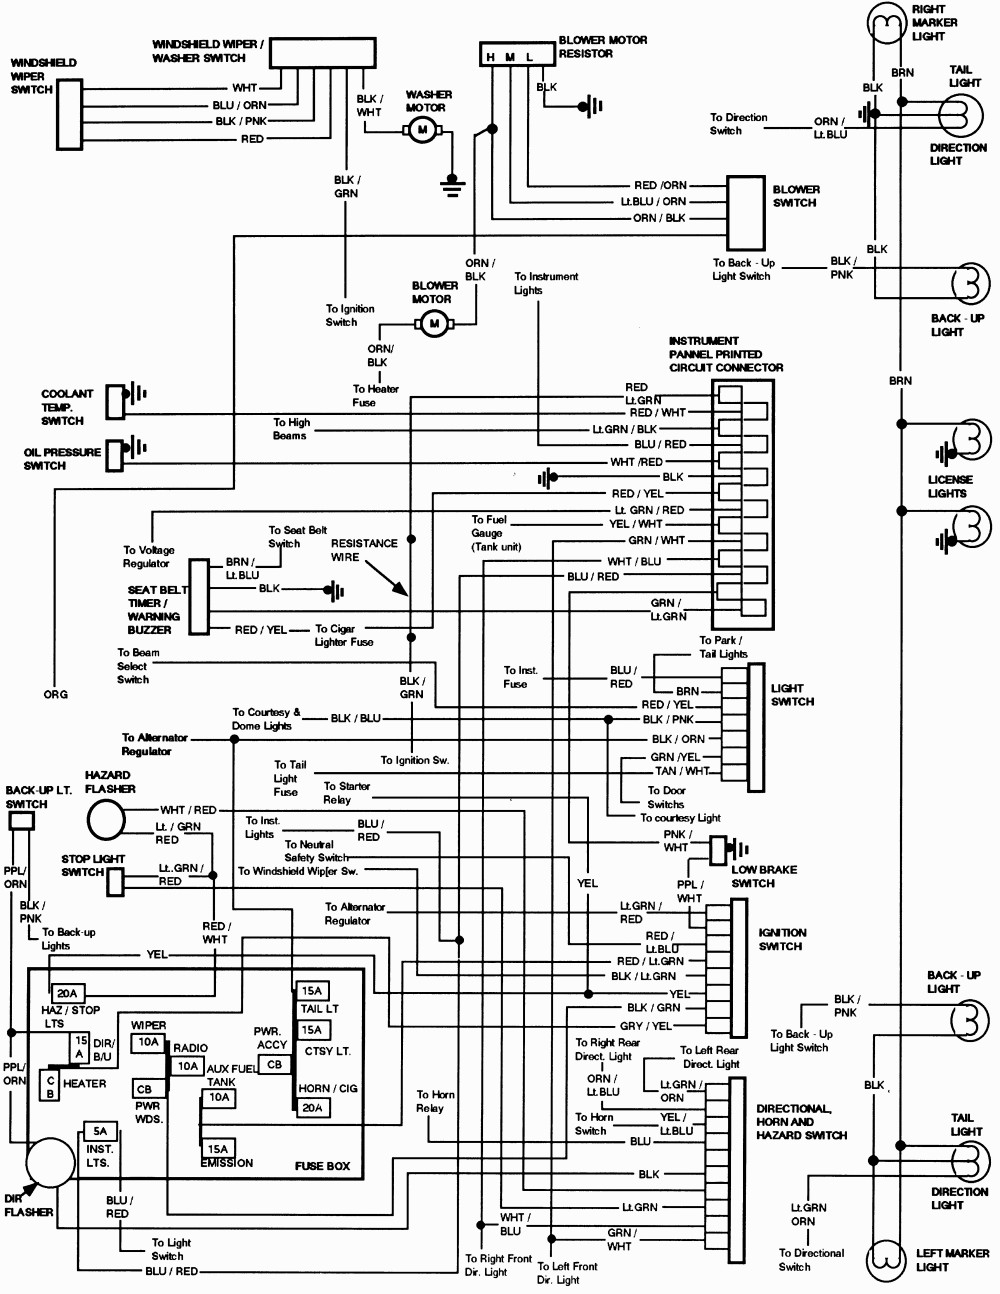 1994 Ford F 150 Stereo Wiring Diagram | Wiring Diagram  Ford F Radio Wiring Diagram on 1999 honda accord wiring diagram, honda civic radio wiring diagram, 94 ford f-150 fuse diagram, 1998 jeep grand cherokee wiring diagram,